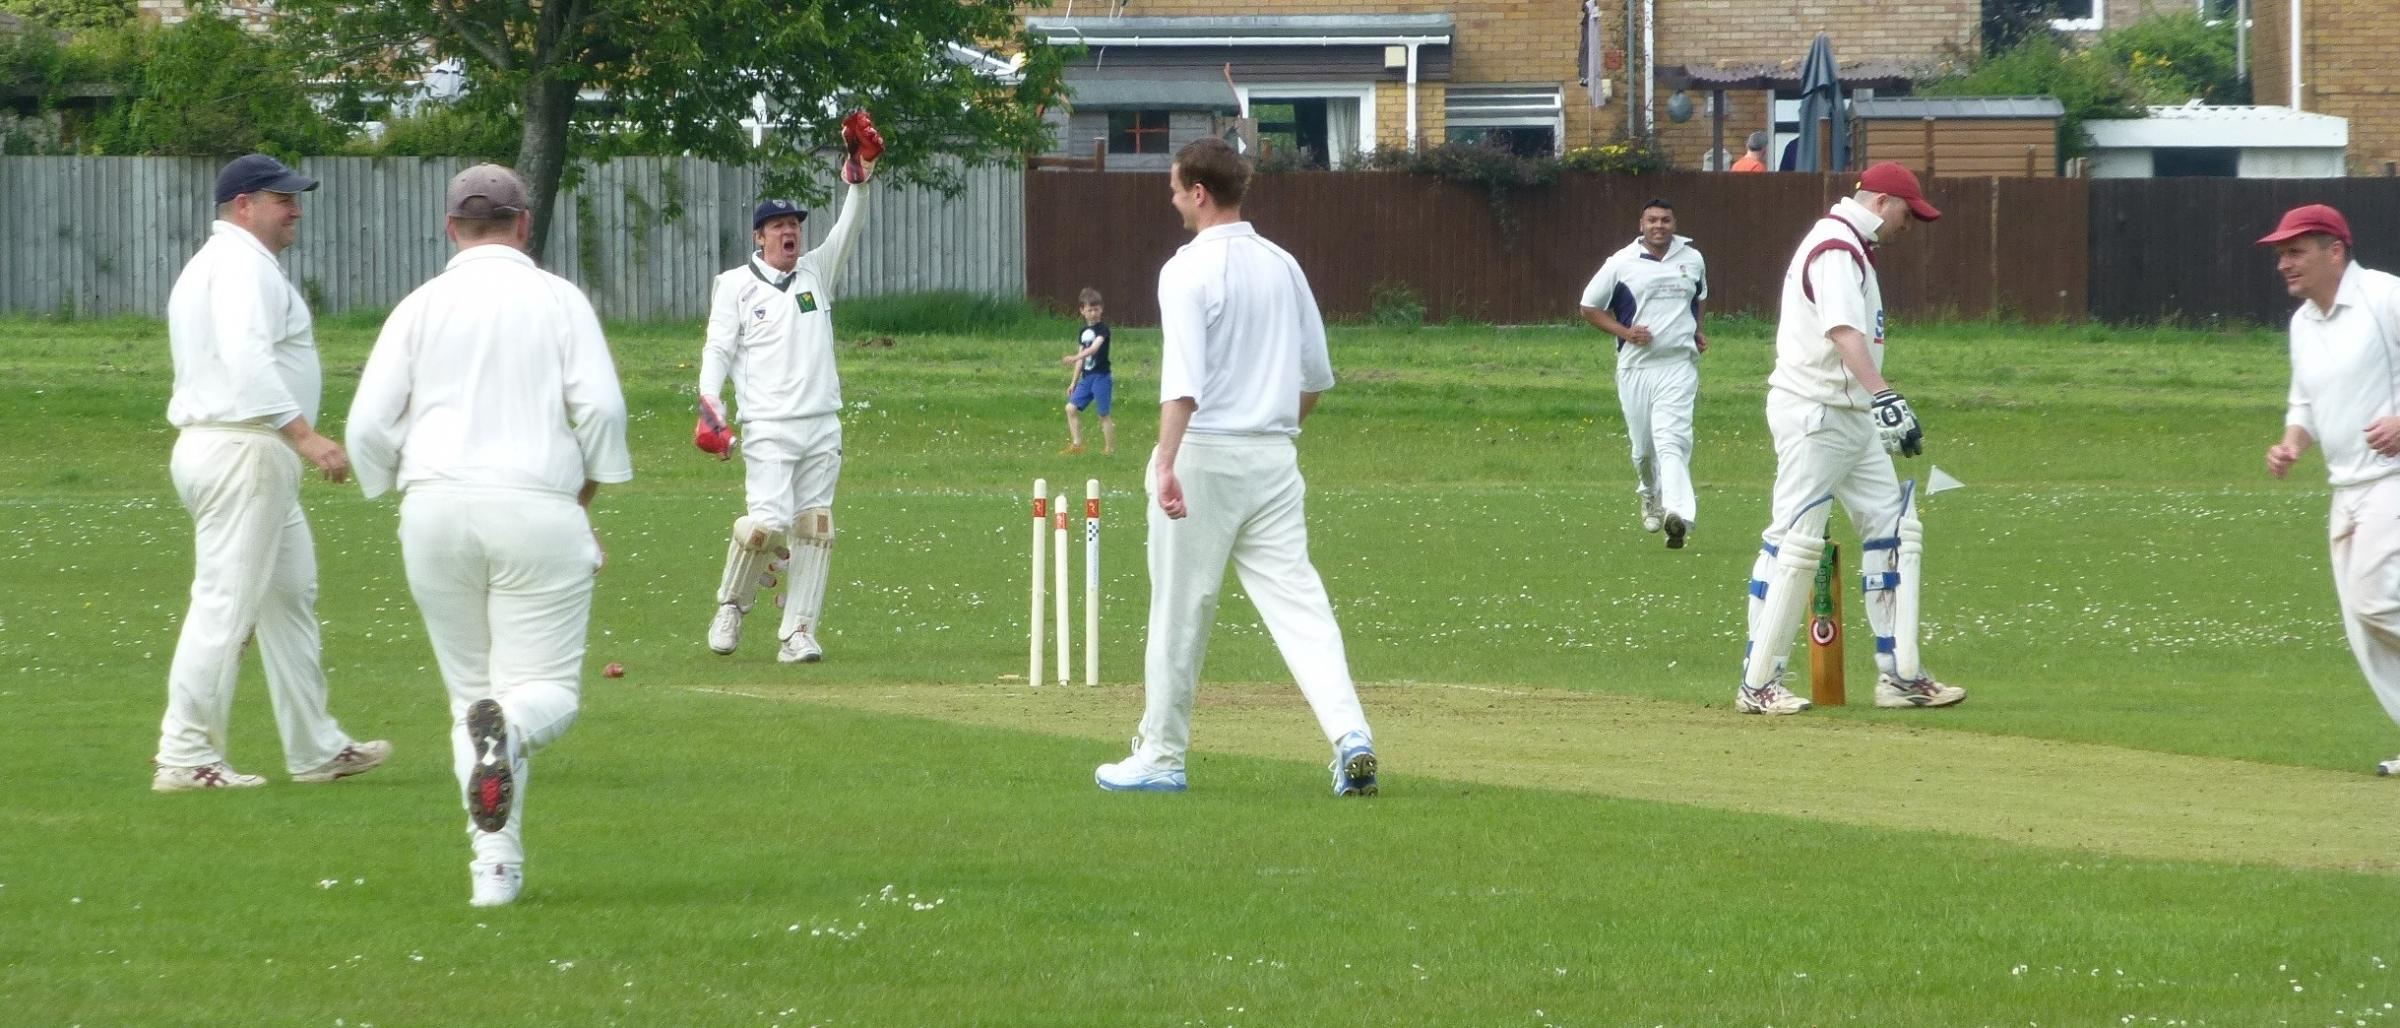 FOUR-WICKET HAUL: Dinas Powys Seconds' Richie Morgan, who produced a great spell of four wickets for five runs, bowls a Tondu batsmen but it was all in vain as his side slipped to a five-wicket defeat.